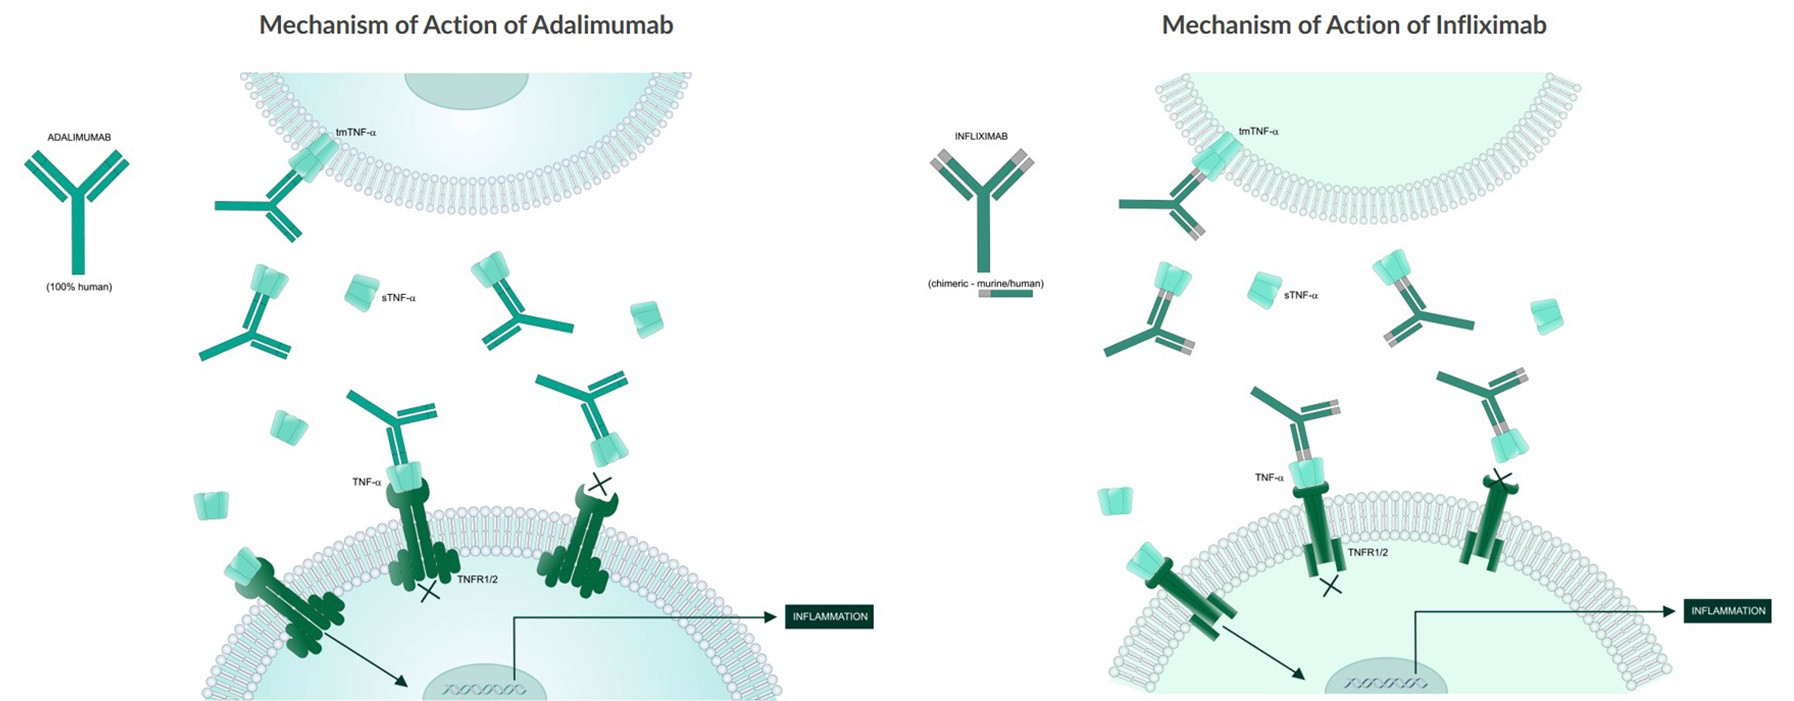 hight resolution of these illustrations depict the mechanisms of action of common tnf alpha blocker mab biologics adalimumab